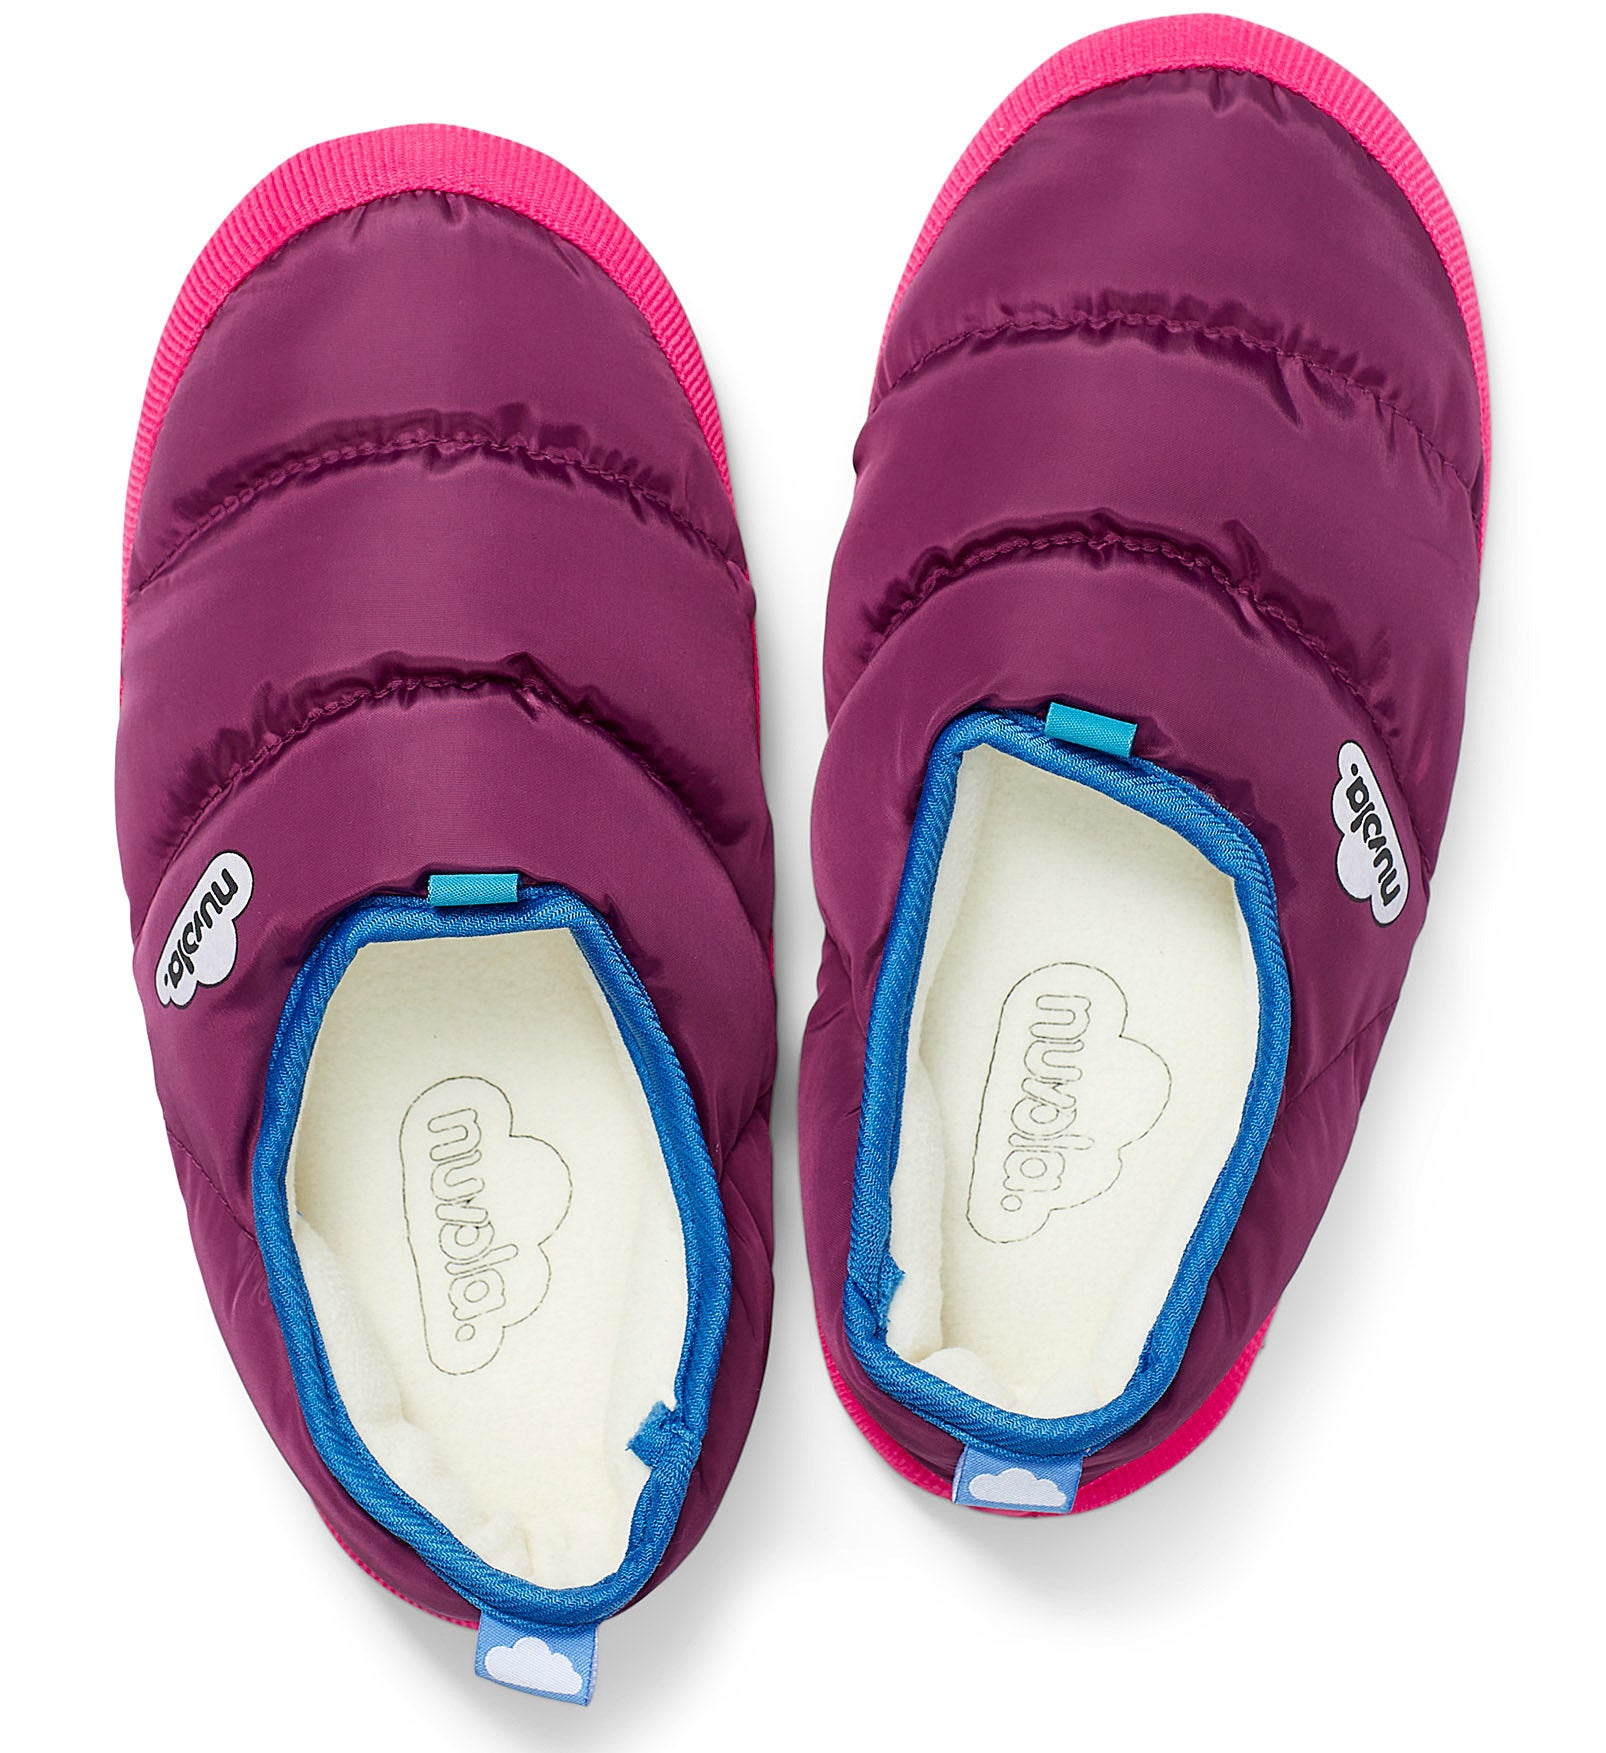 A pair of puffy slippers